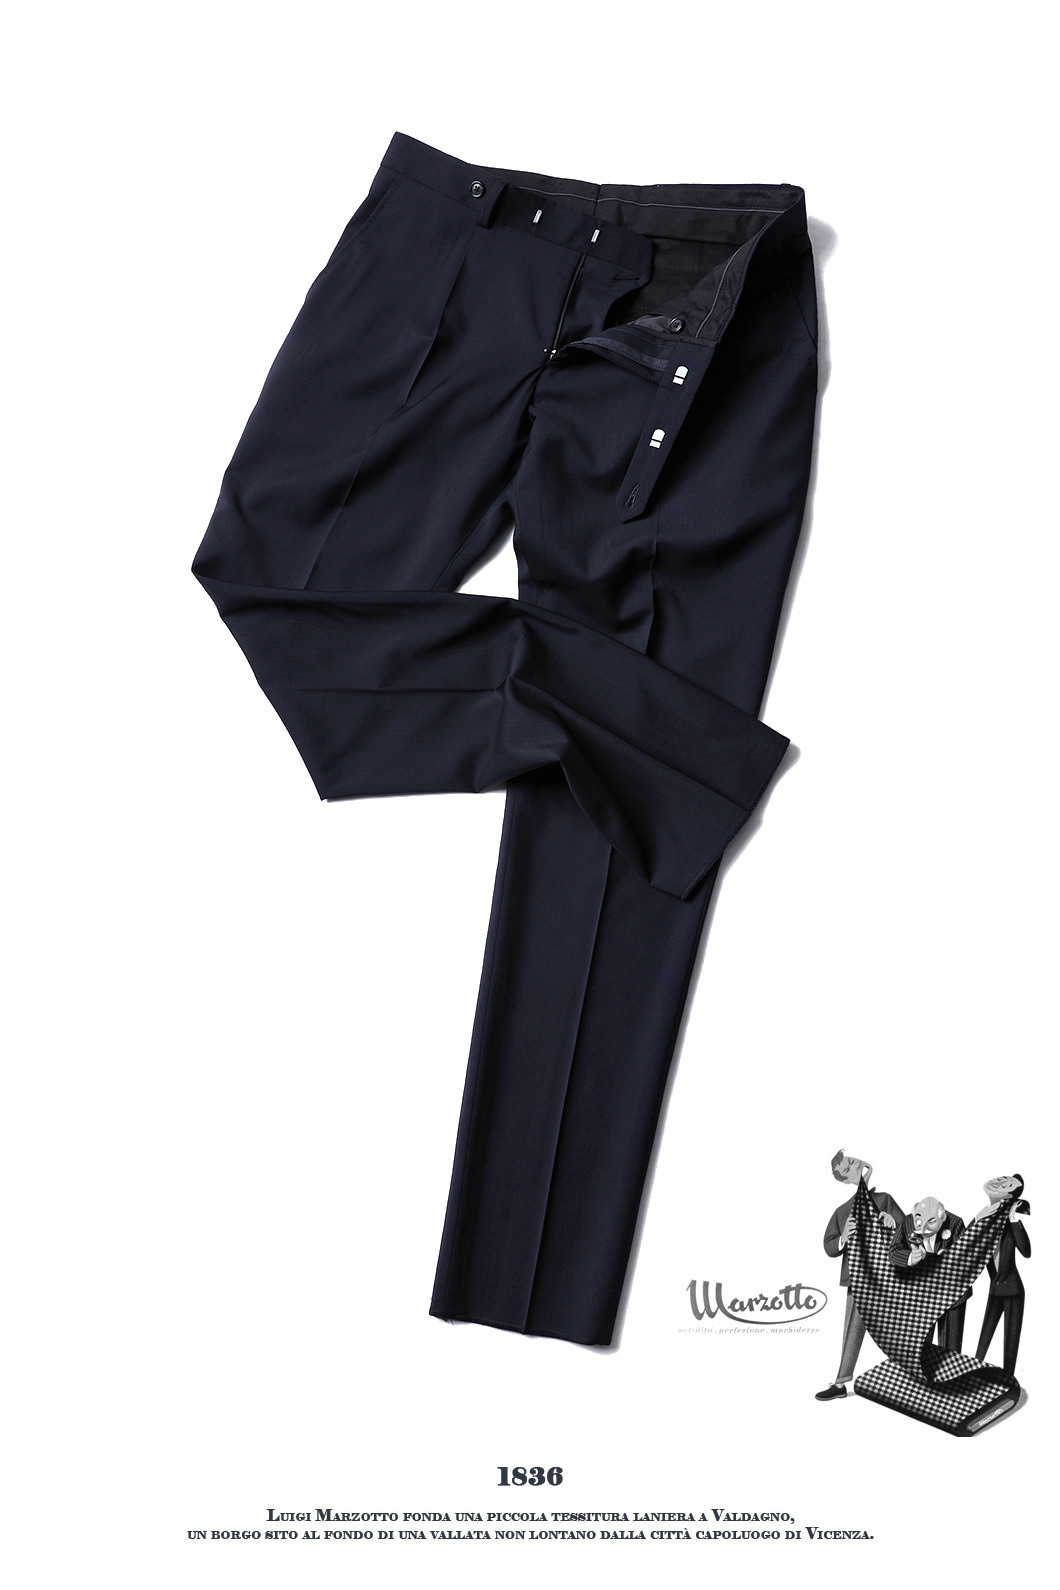 493 ITALY MARZOTTO VOLUME SLACKS PANTS-NAVY봄,가을시즌 추천 슬렉스!!